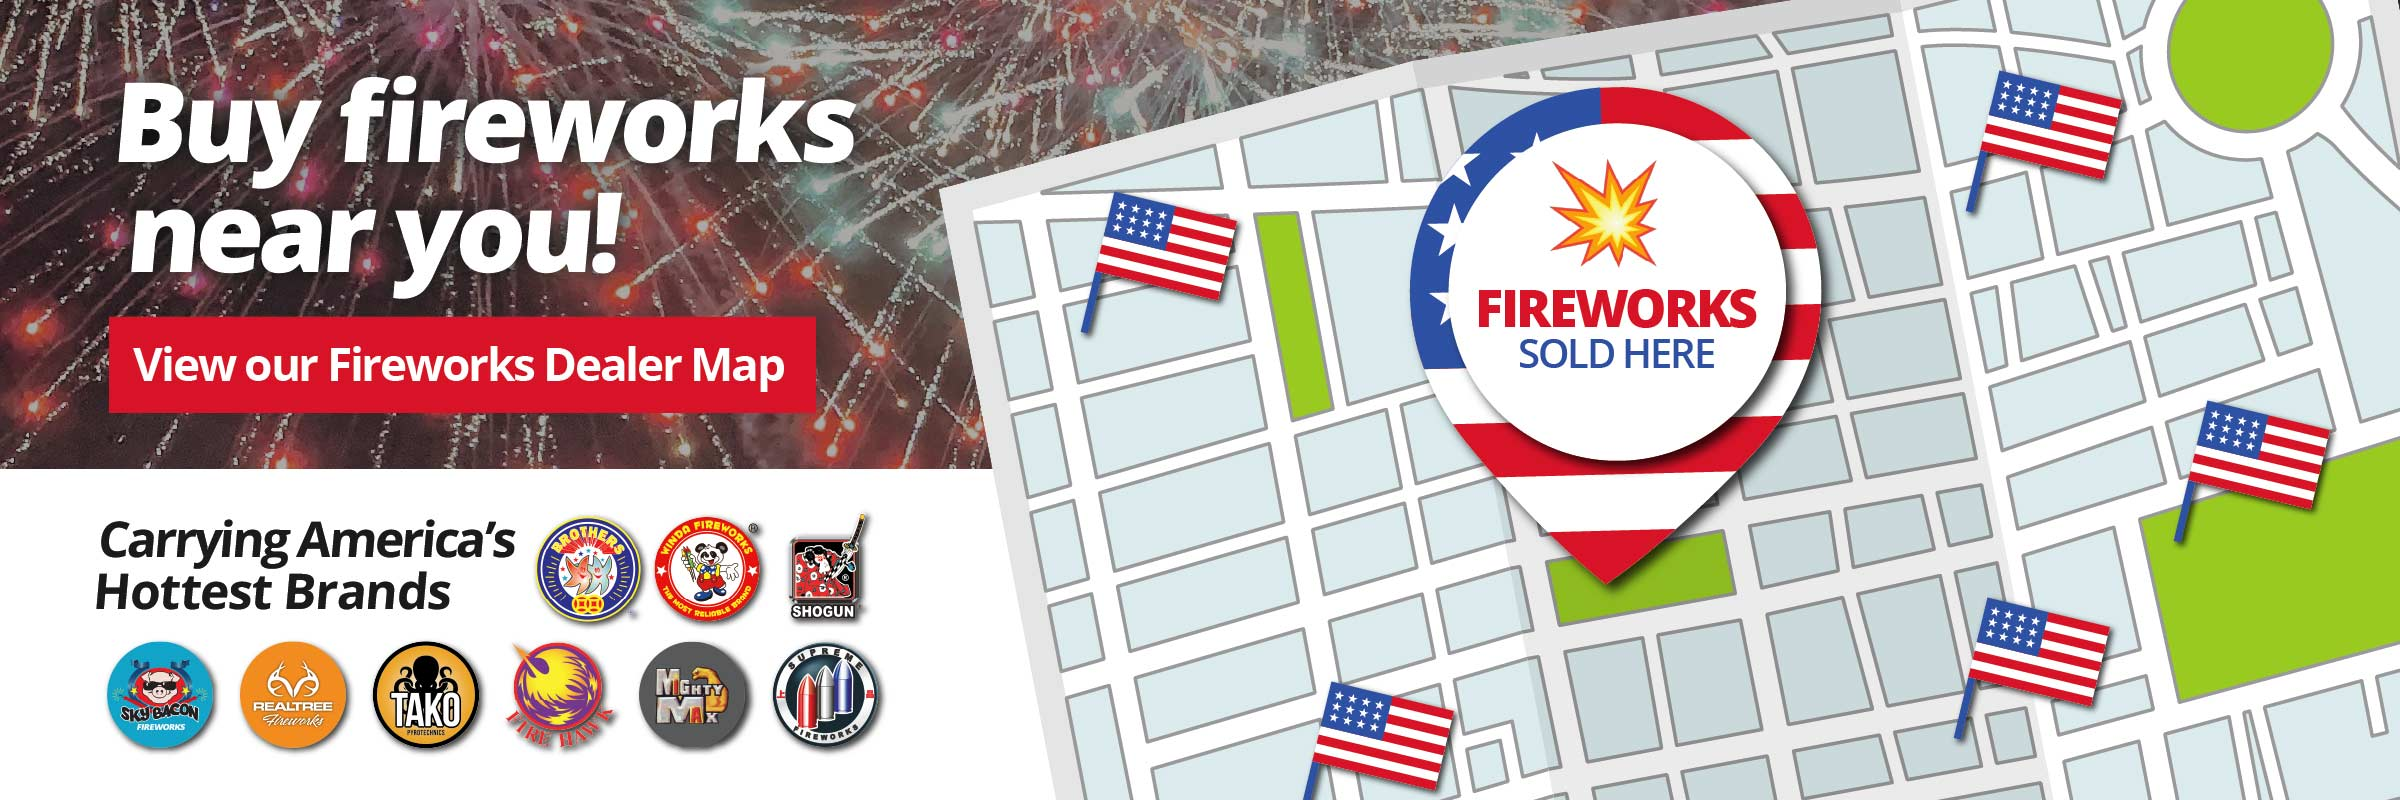 Talk to our Experts about the perfect fireworks for your needs